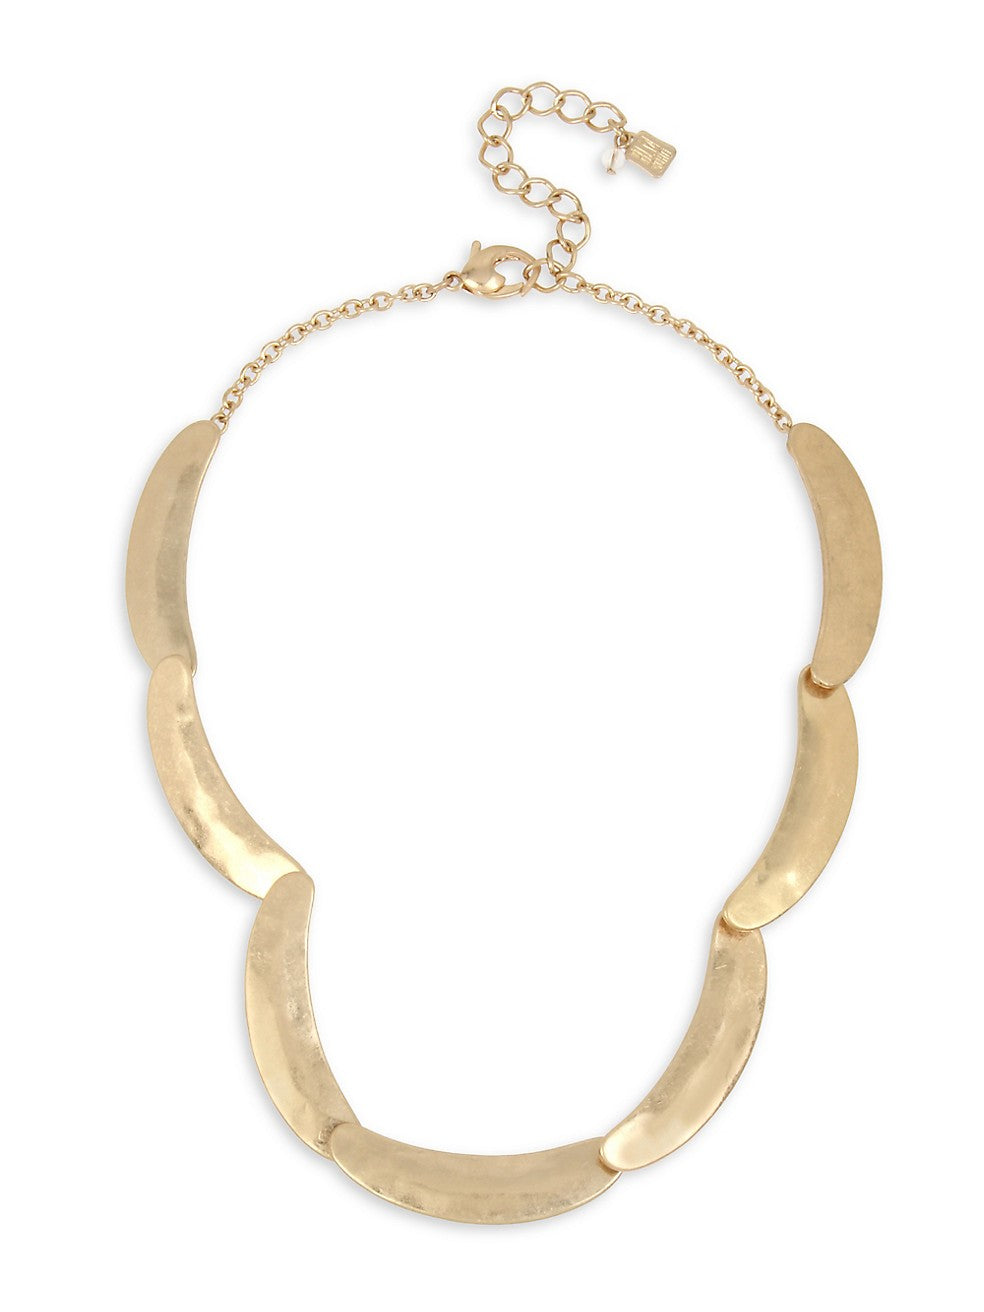 Greener Pastures Sculptural Curved Goldtone Collar Necklace